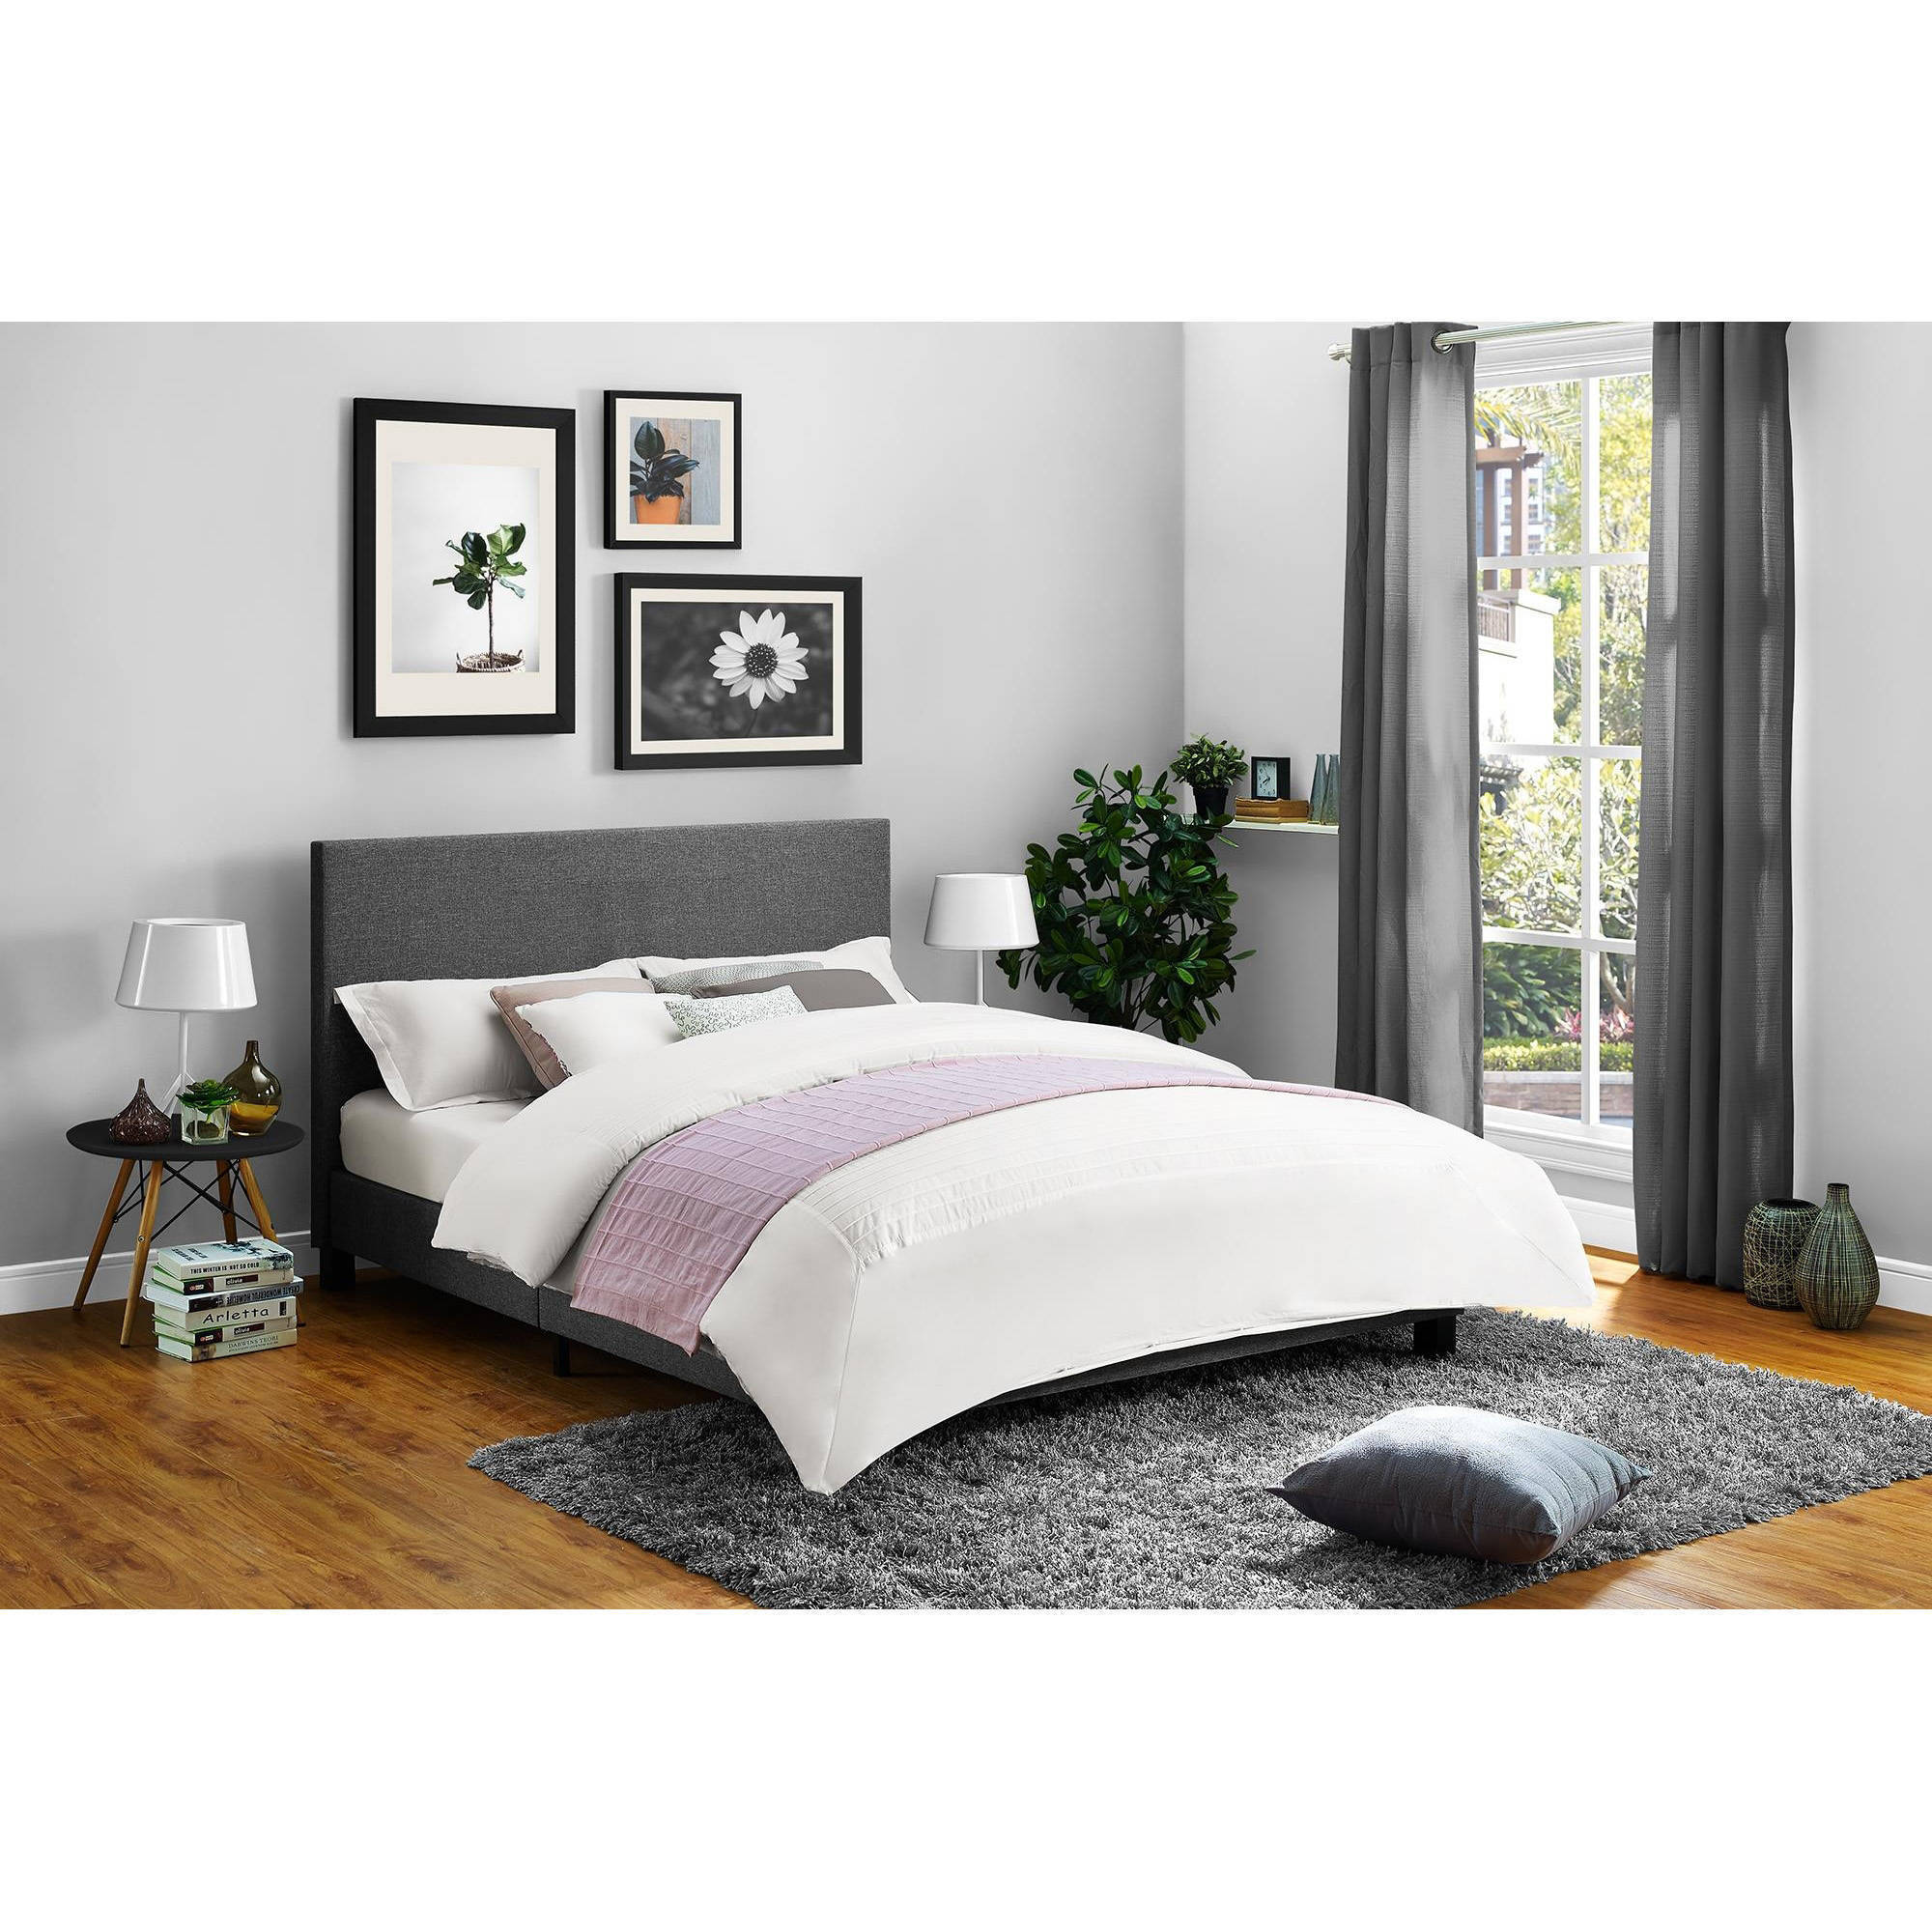 Beautiful Maison Eastern King Upholstered Bed, Pebble Stone   Walmart.com